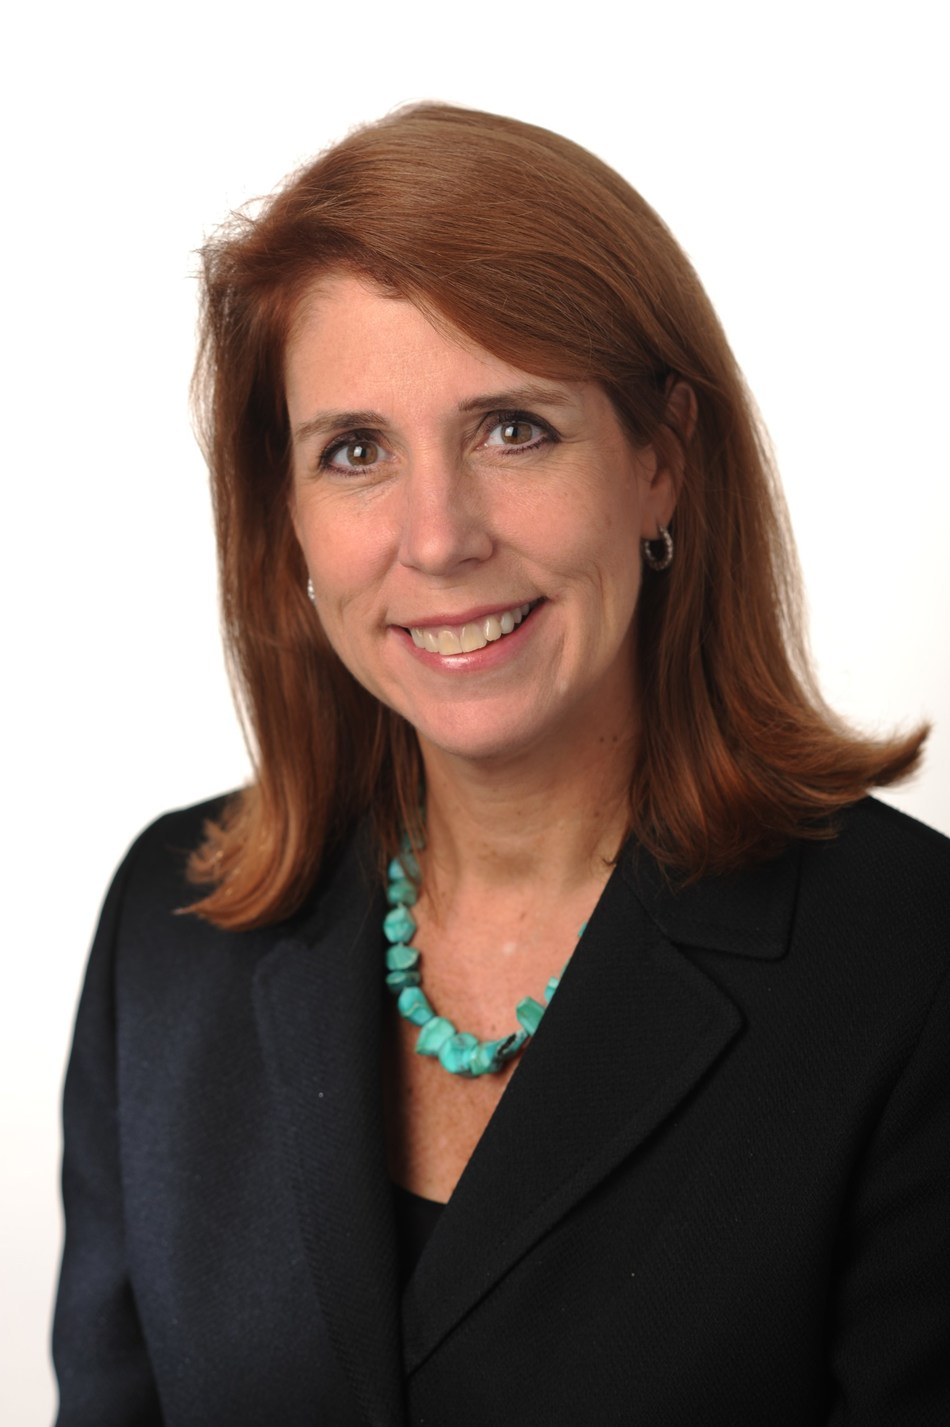 """Tricia Tolivar, Executive Vice President and Chief Financial Officer at GNC, said, """"The customer is at the center of every decision we make at GNC. We selected enVista's OMS to help us rapidly advance our omni-channel commerce initiatives and respond to customer expectations for additional fulfillment options and seamless, convenient, personalized shopping experiences. The capabilities of enVista's OMS and Unified Commerce Platform are extremely robust."""